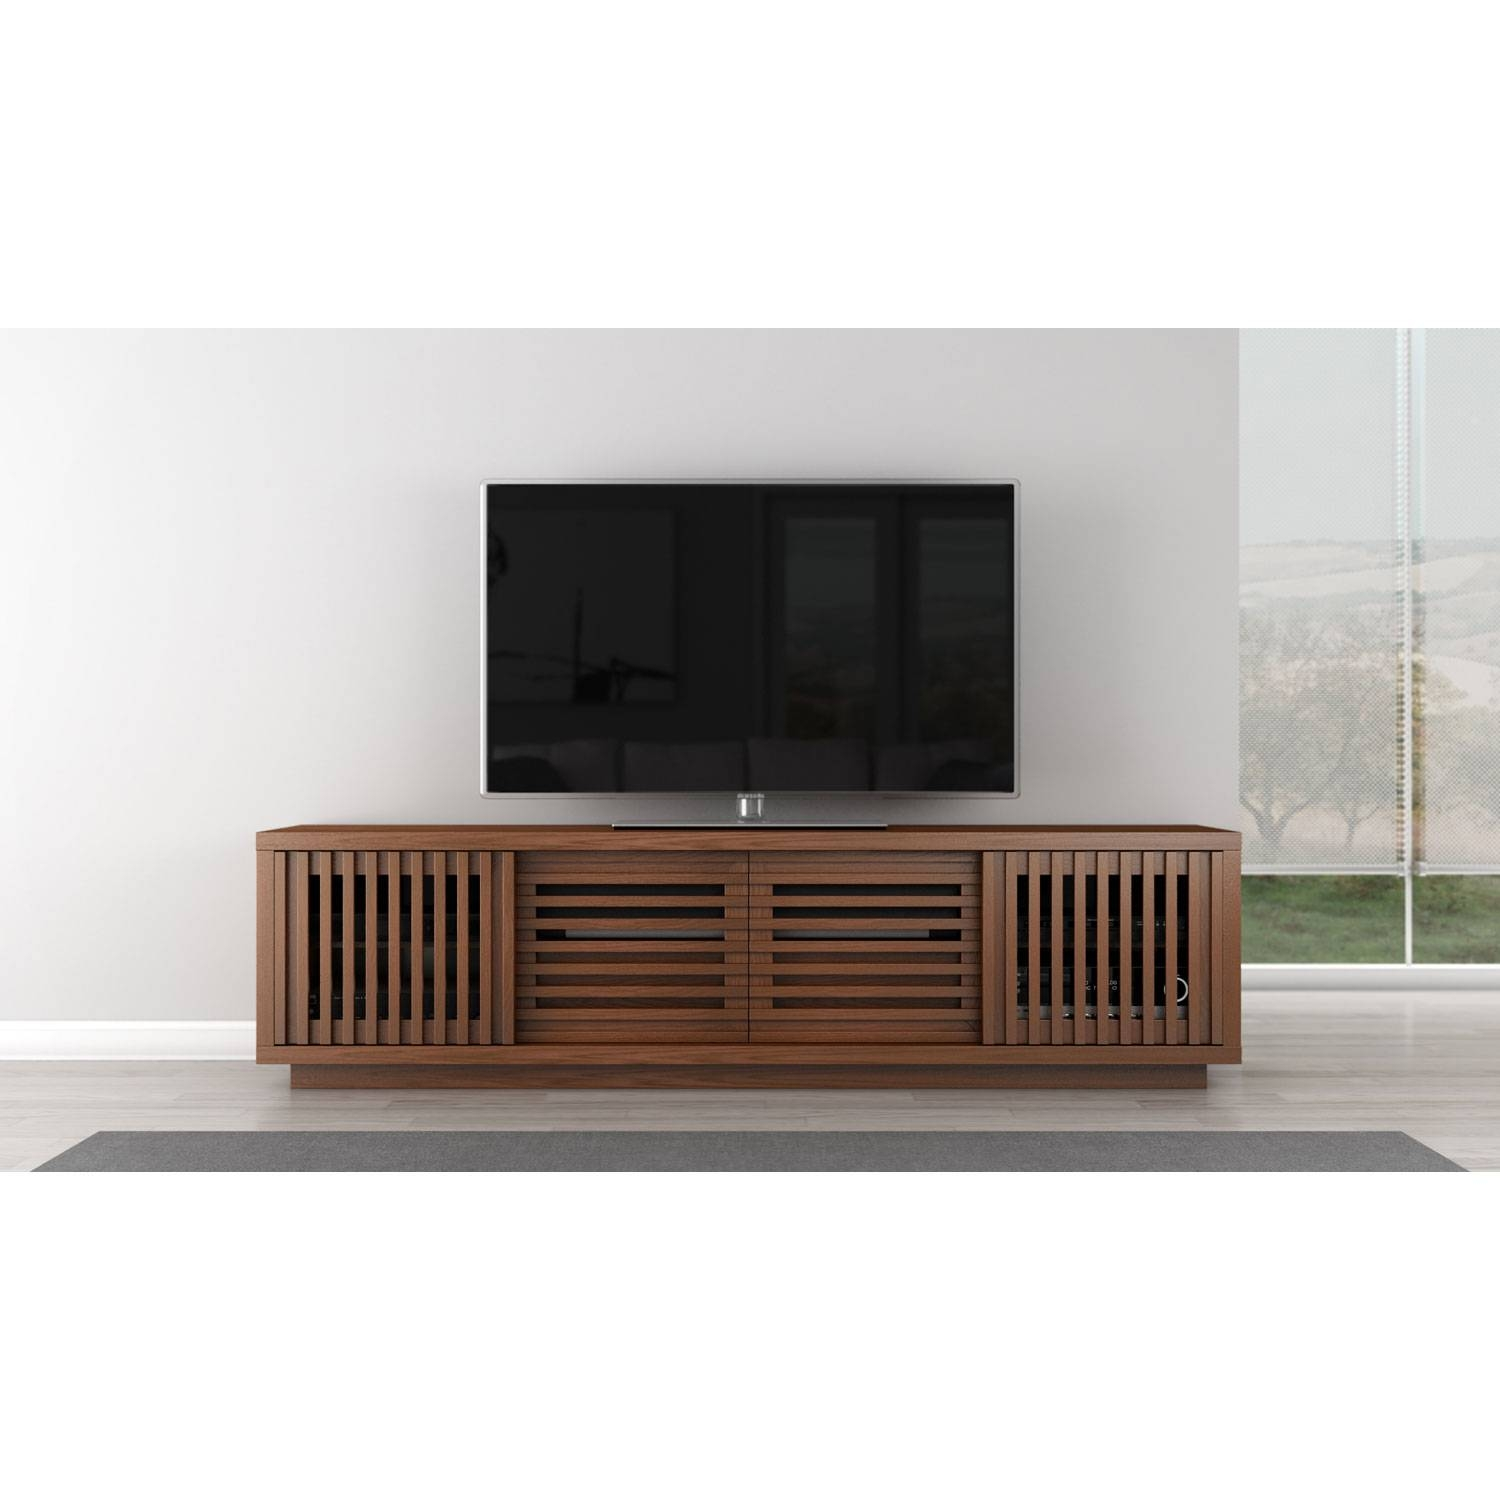 Signature Contemporary Rustic 82 Inch Warm Honey Finished White pertaining to Honey Oak Tv Stands (Image 2 of 15)